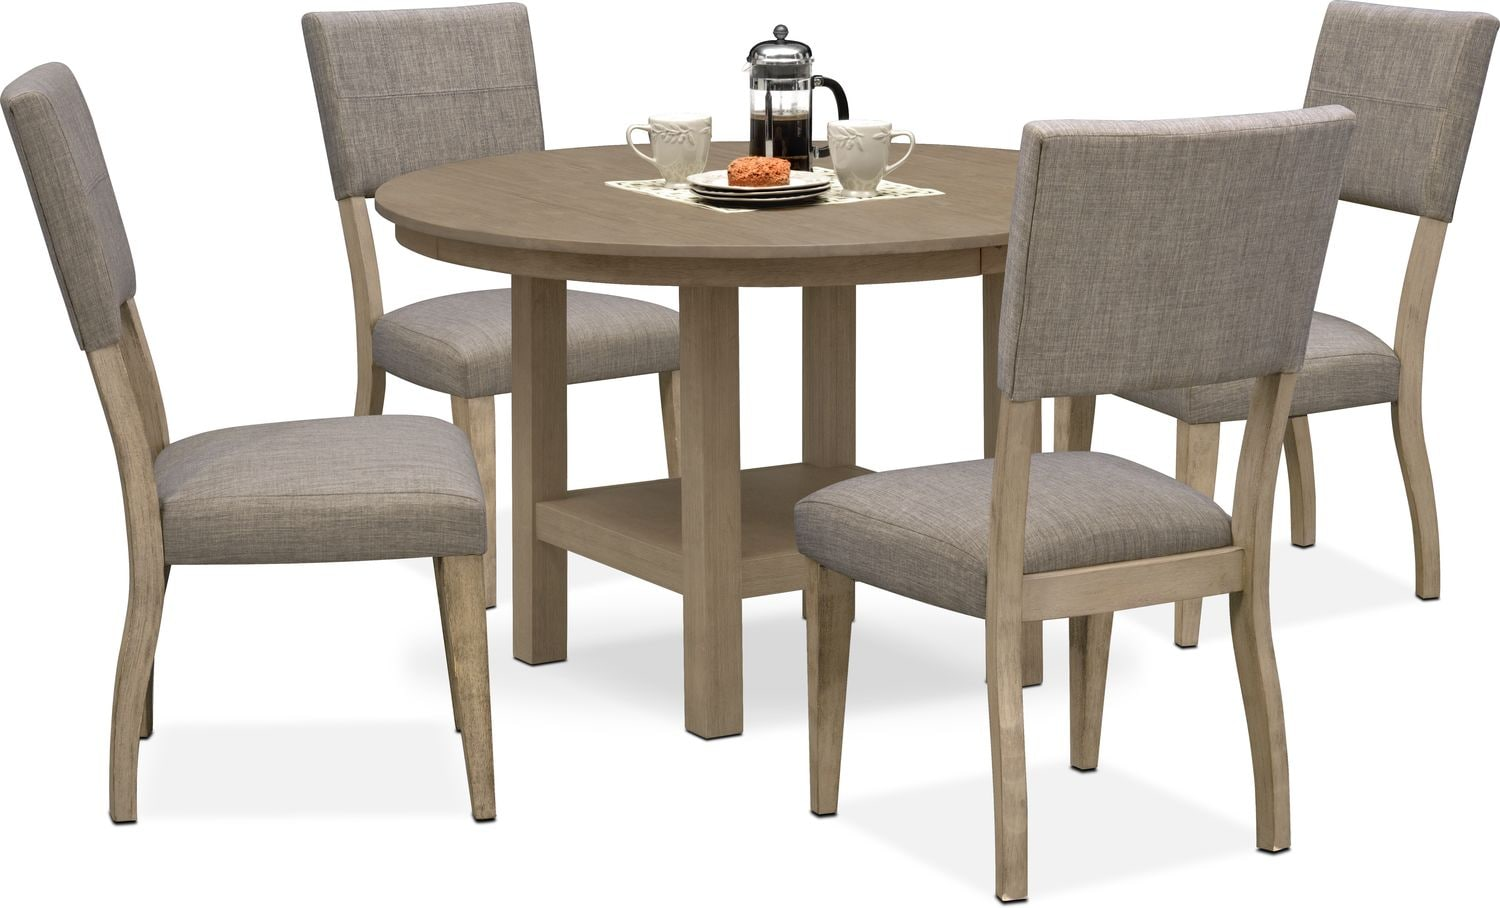 Dining Room Furniture - Tribeca Round Dining Table and 4 Upholstered Dining Chairs - Gray